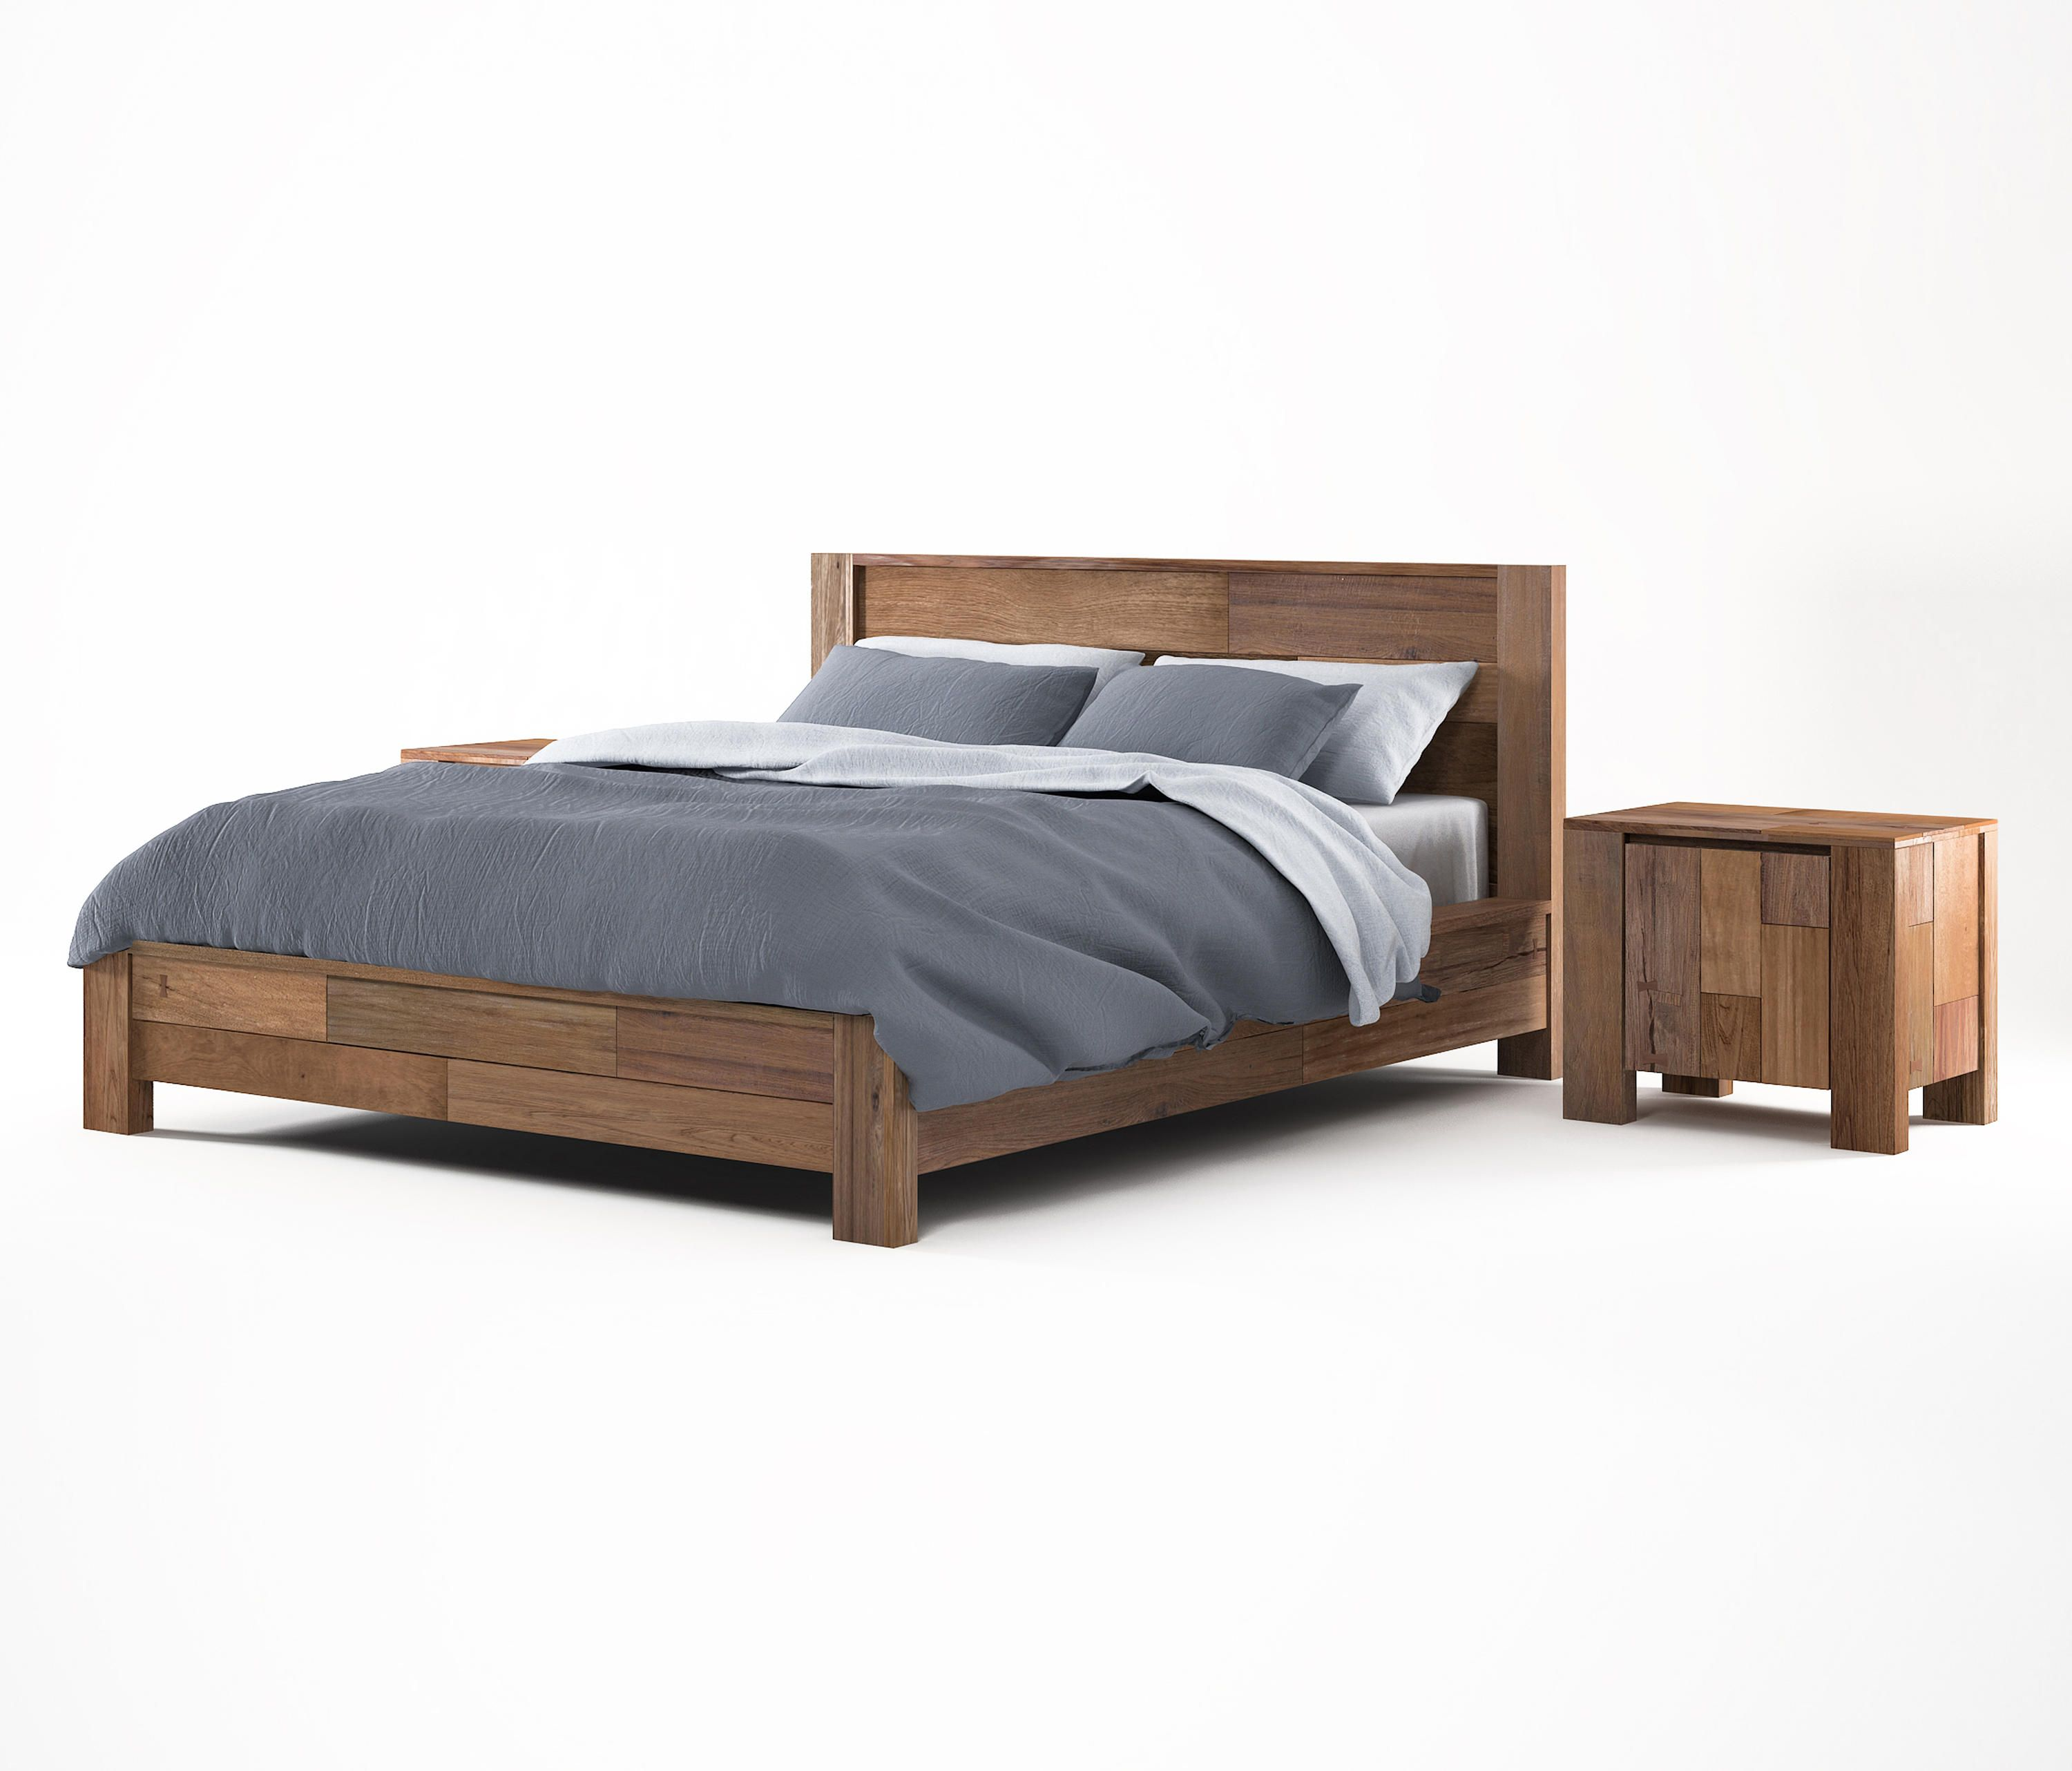 Teak Wood Shandur King Size Bed King Sized Bedroom King Size